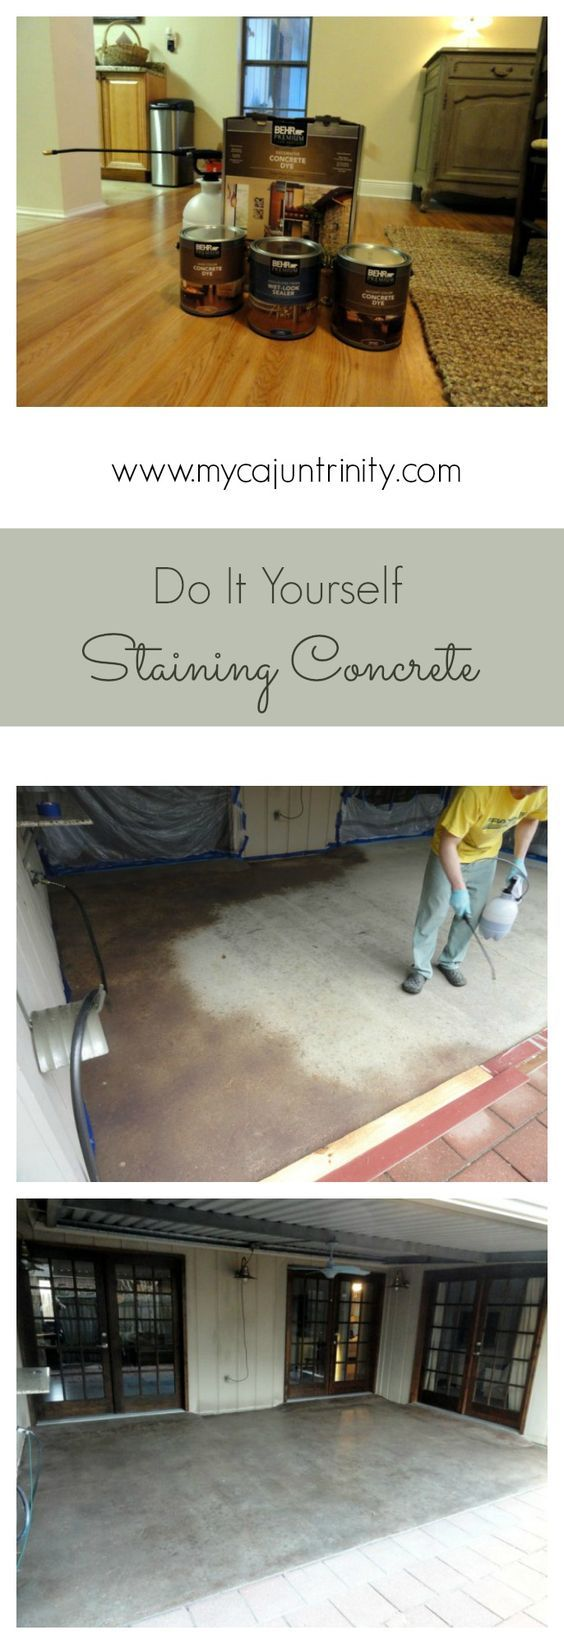 Step-by-step instructions on how to stain concrete. This easy tutorial will help make your patio or driveway look classy and chic. Click through for more information.